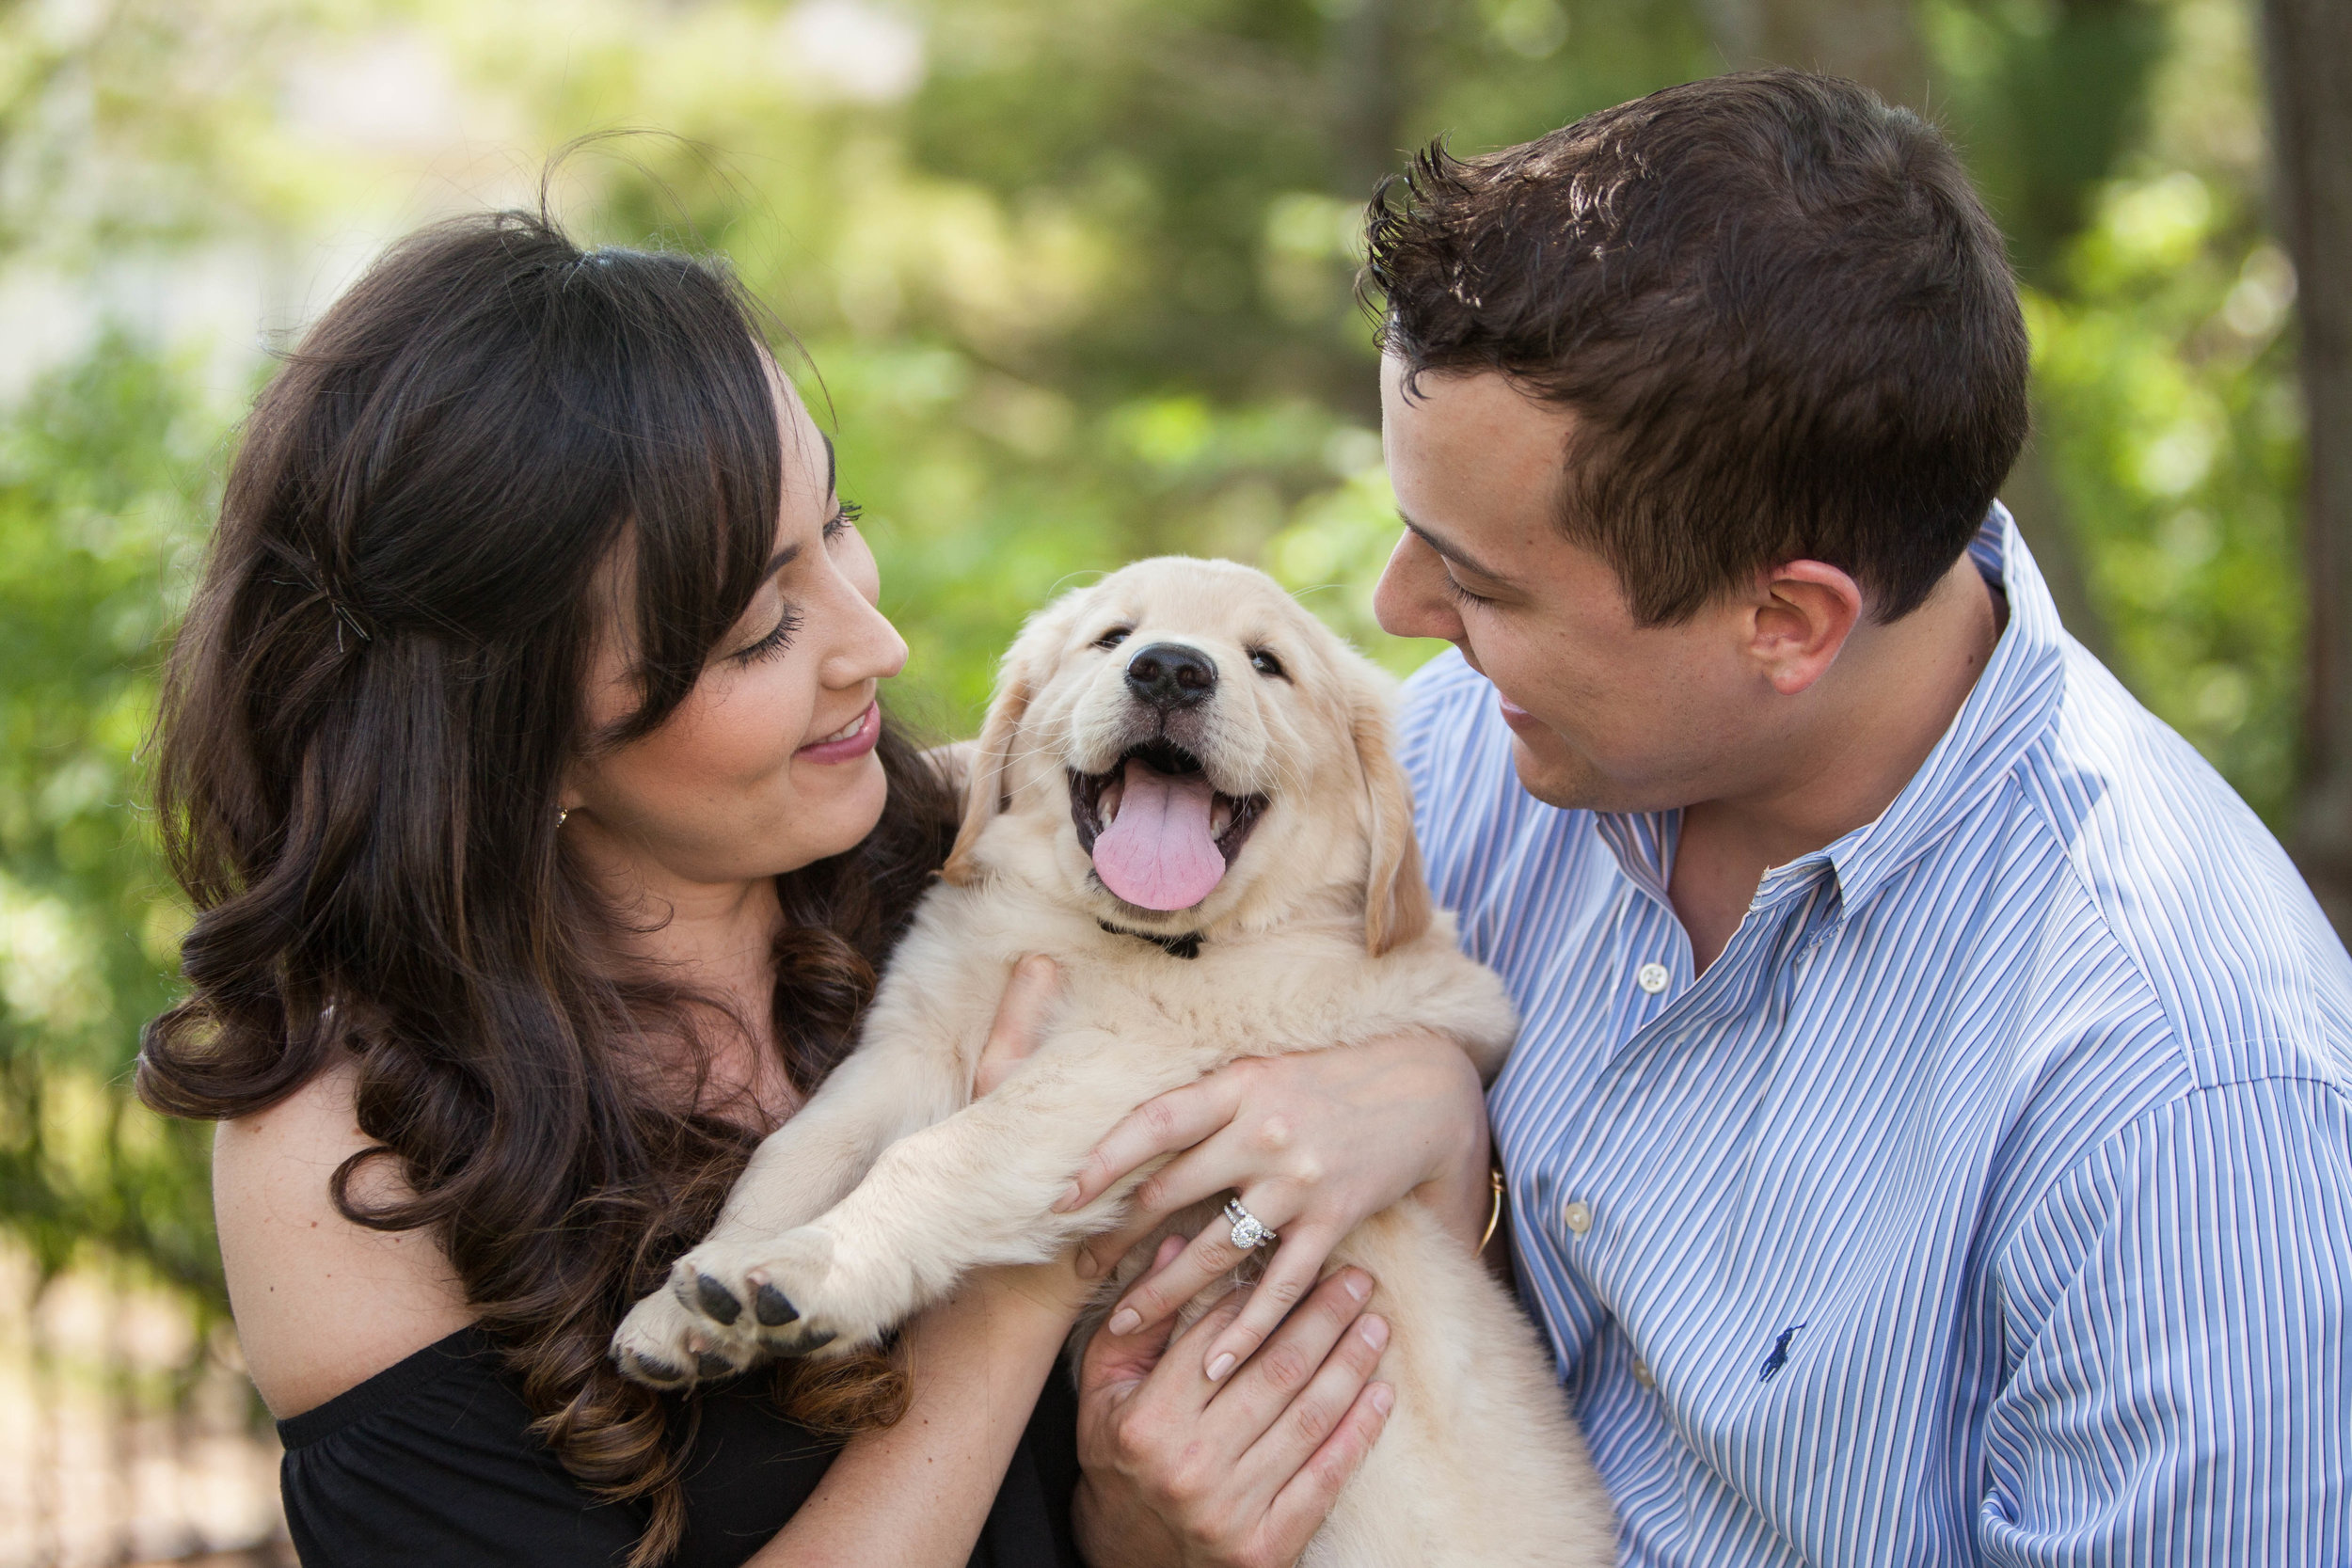 Couple with adorable puppy photo shoot